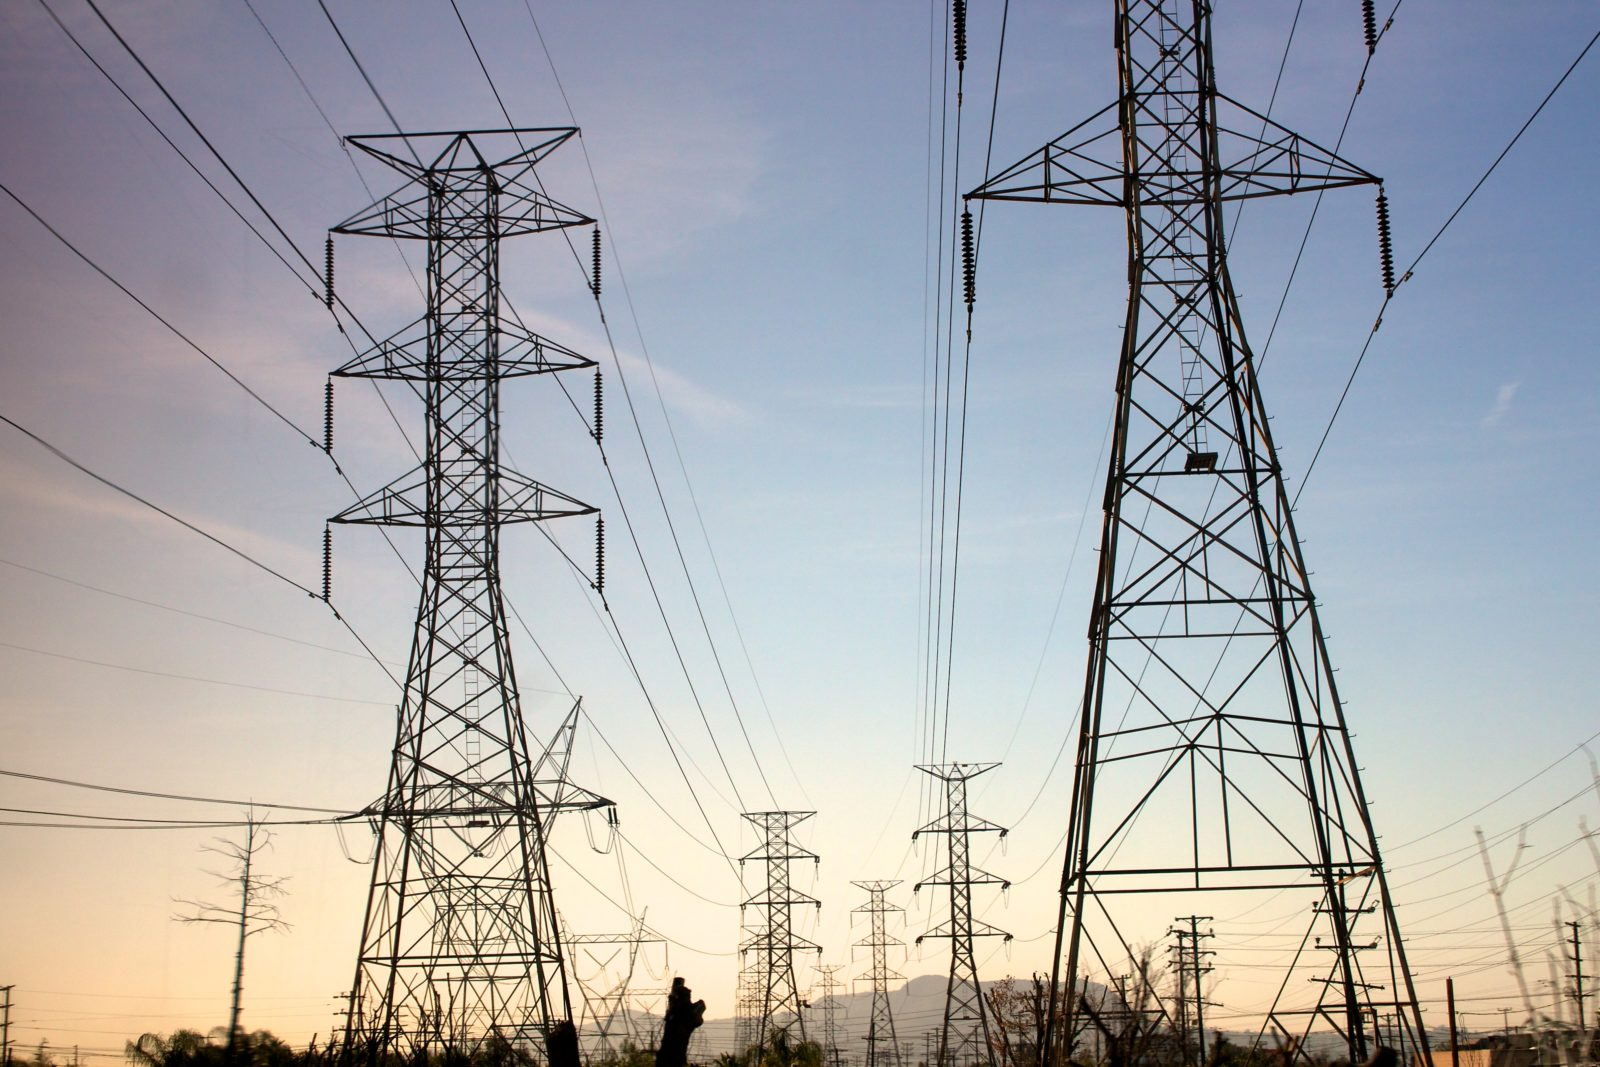 climate change in los angeles county: grid vulnerability to extreme heat